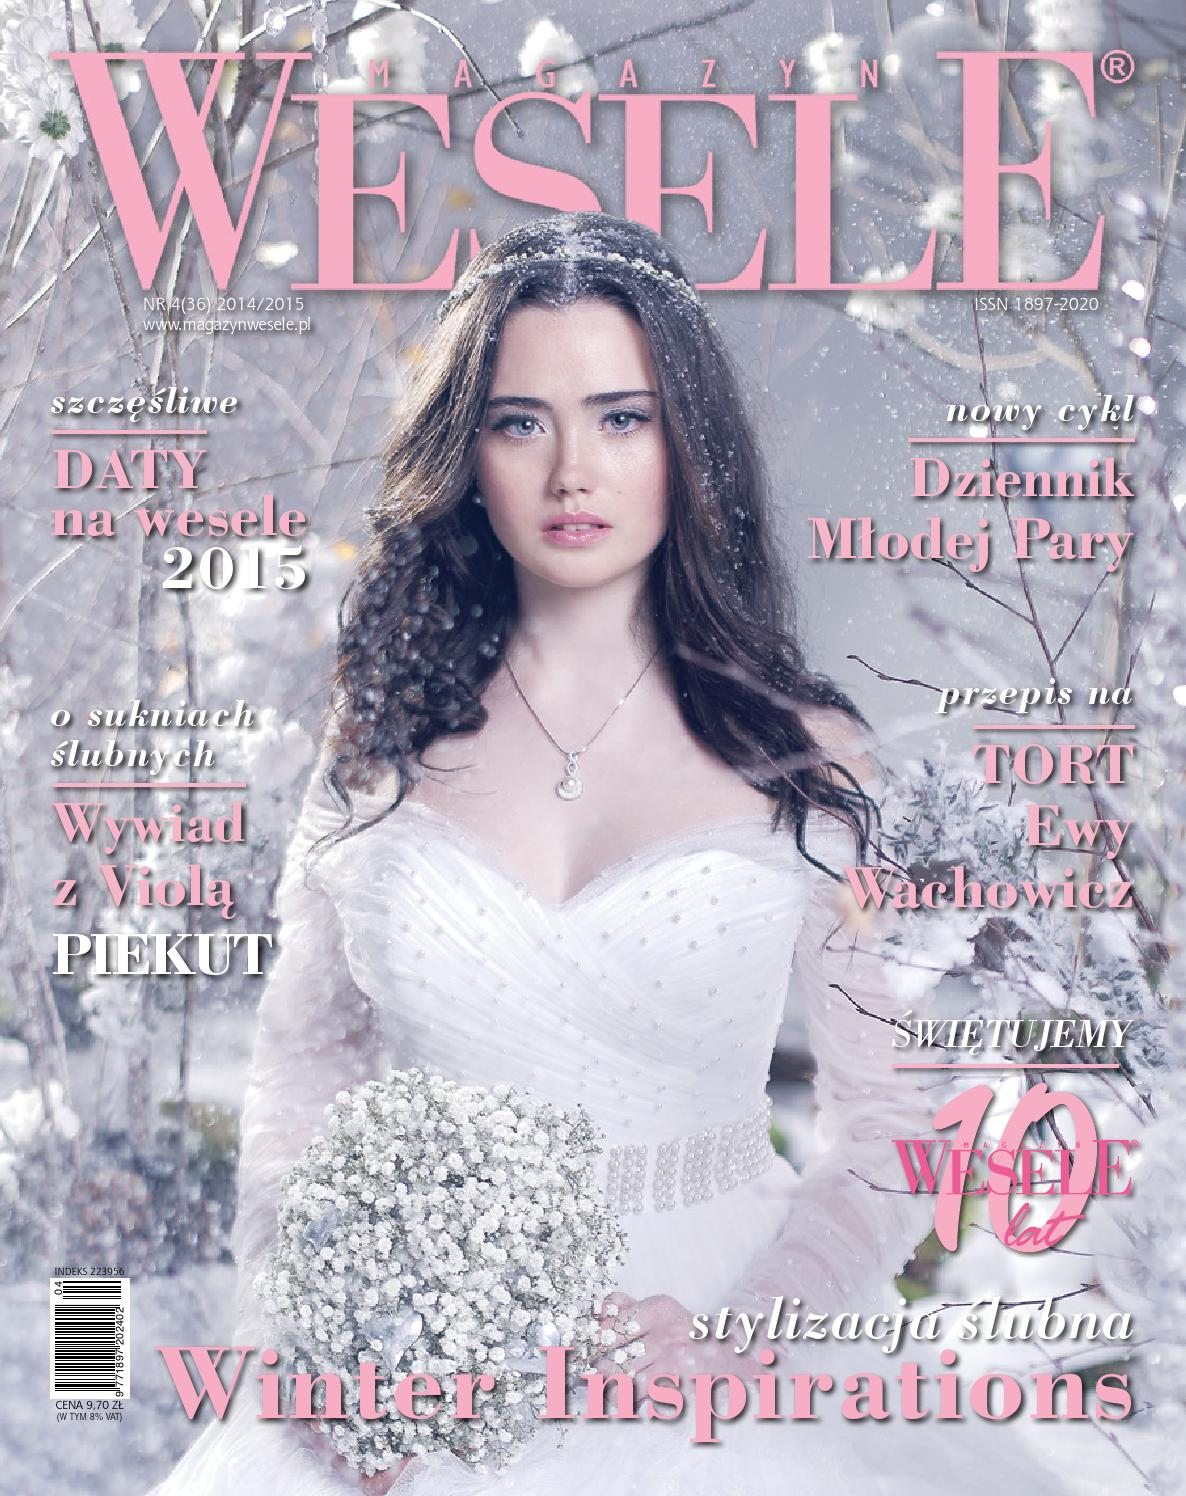 2137d76d6d Magazyn Wesele 4(36) 2014 2015 by Magazyn Wesele - issuu